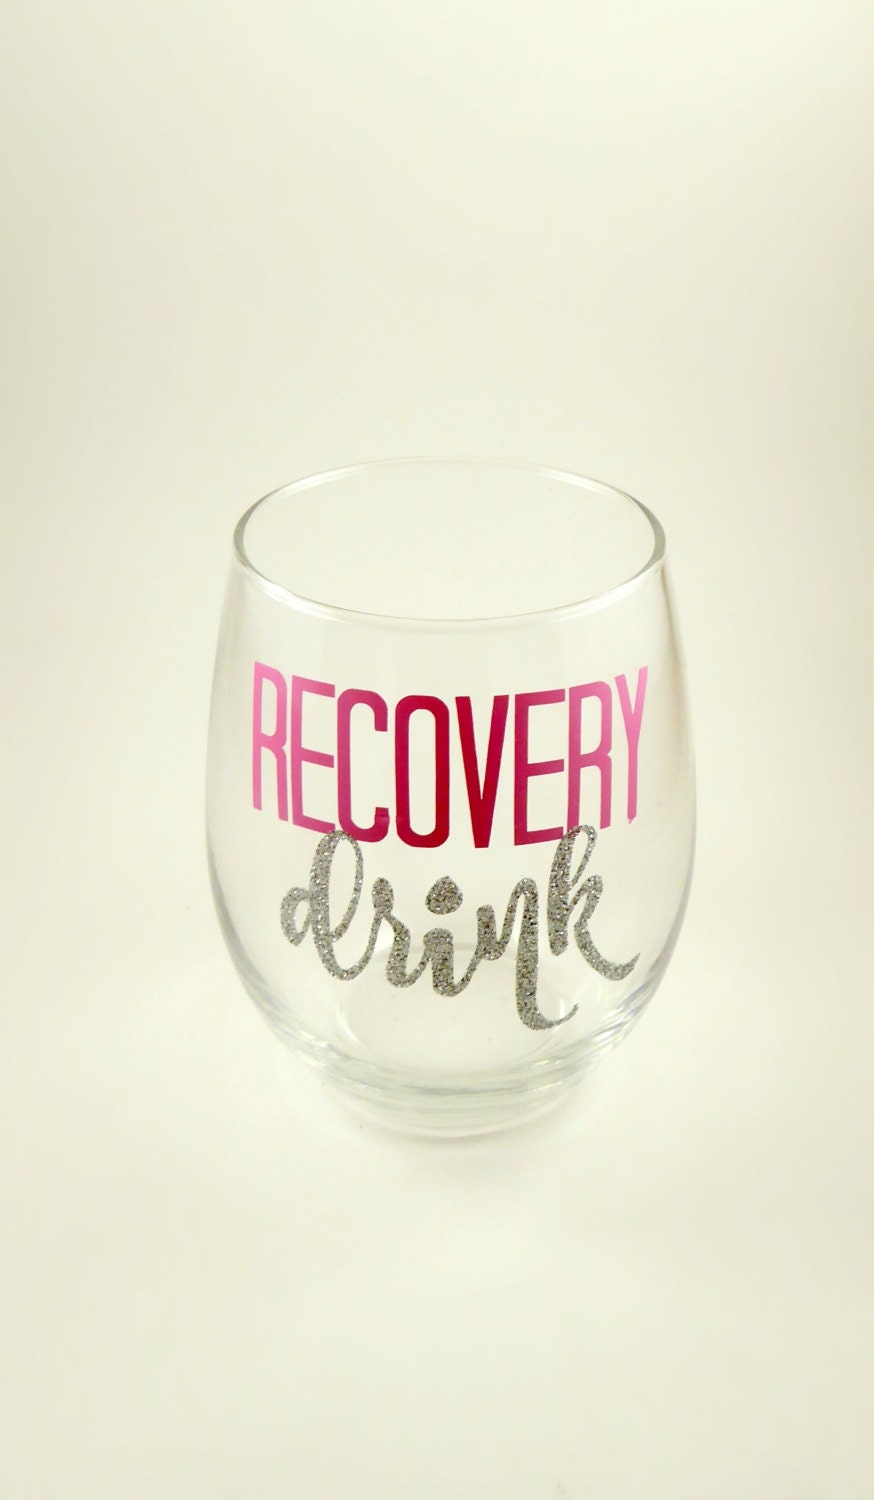 Recovery Drink Running Stemless Wine Glass Great Christmas | Etsy